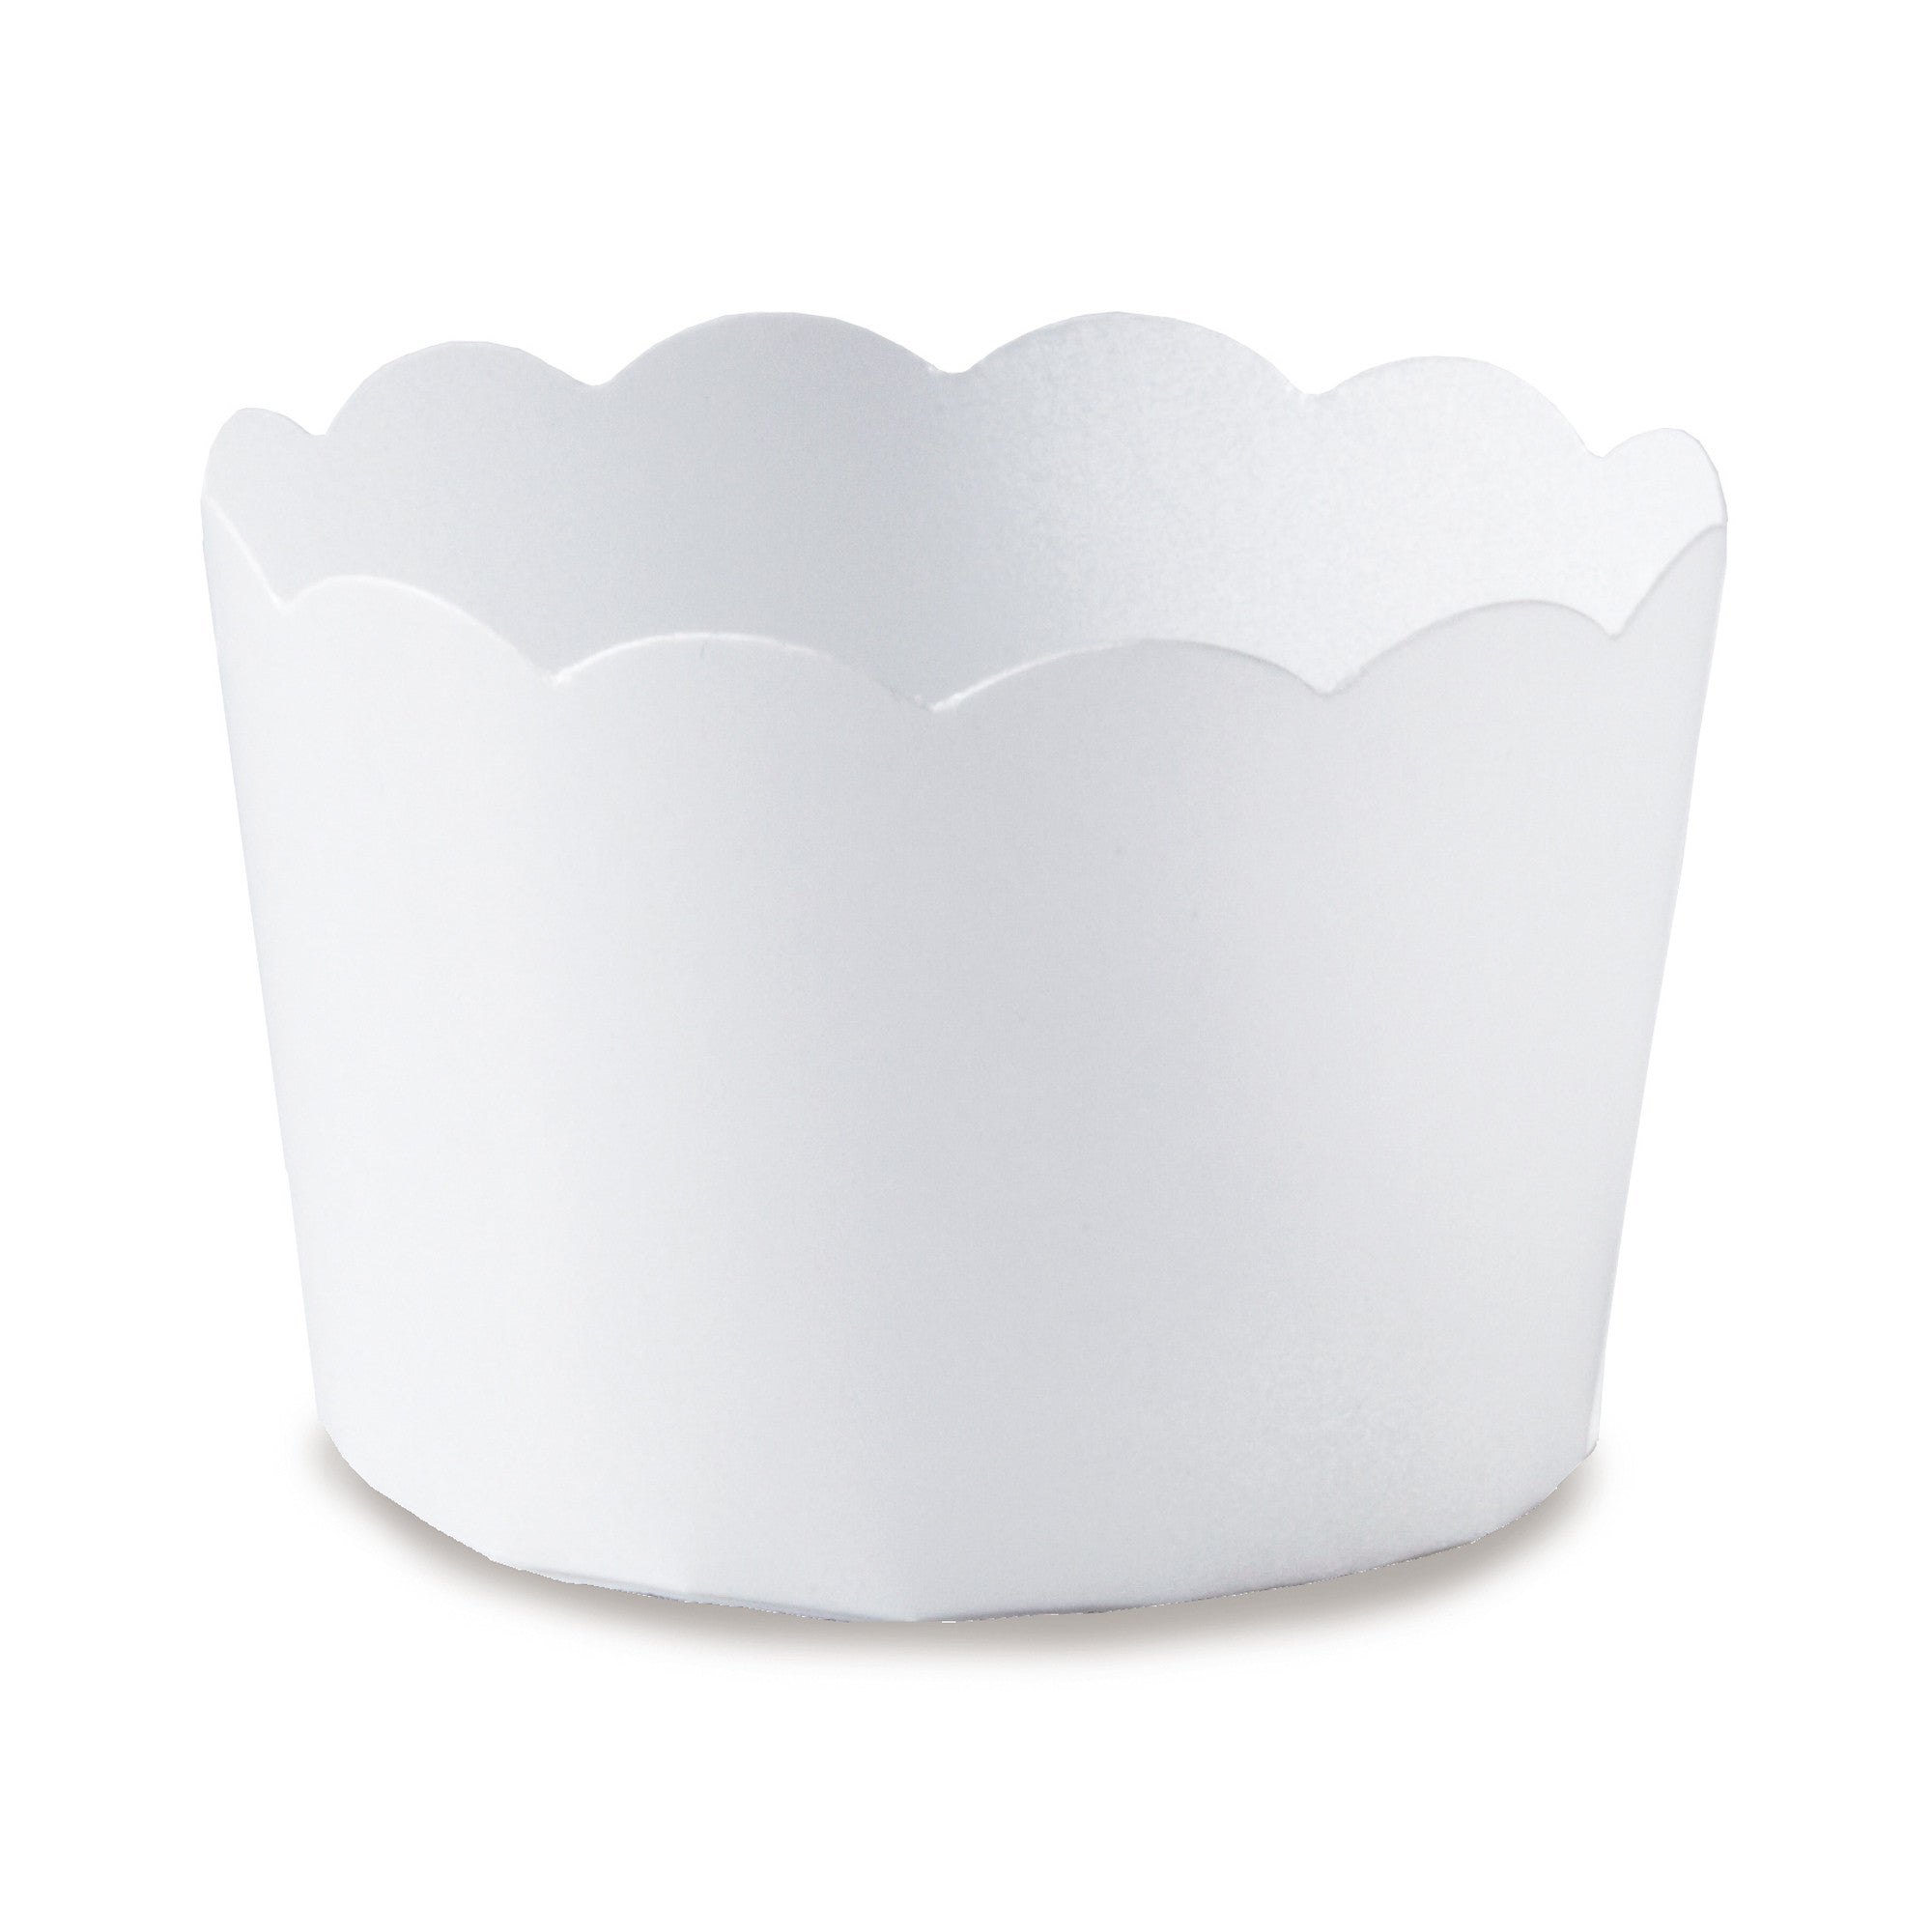 Plastic Baking Cups, CK61 - Welcome Home Brands